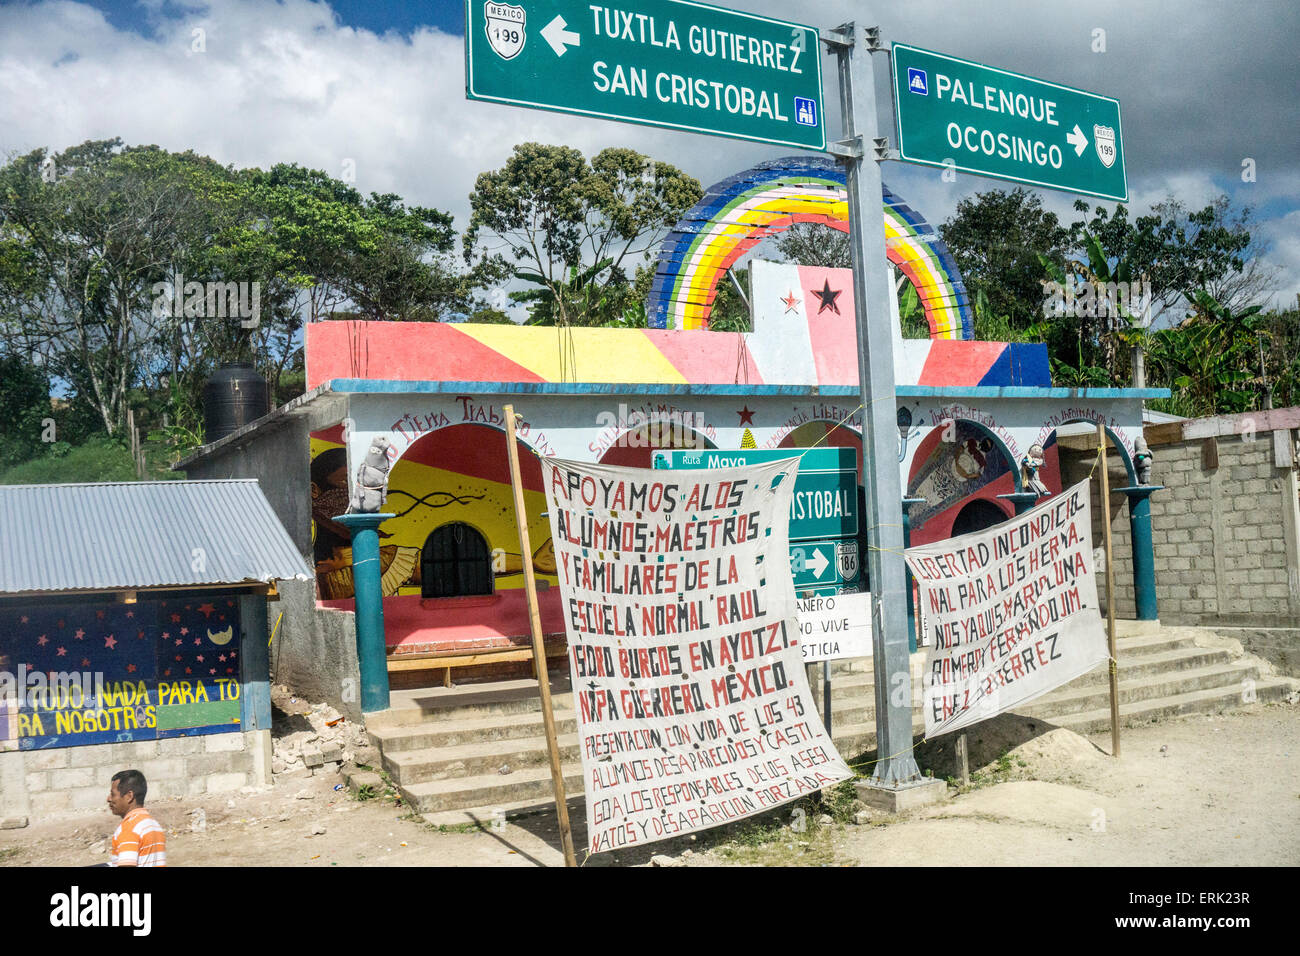 federal highway sign at intersection in Chiapas helps support Zapatista  banners protesting inaction on 43 disappeared - Stock Image